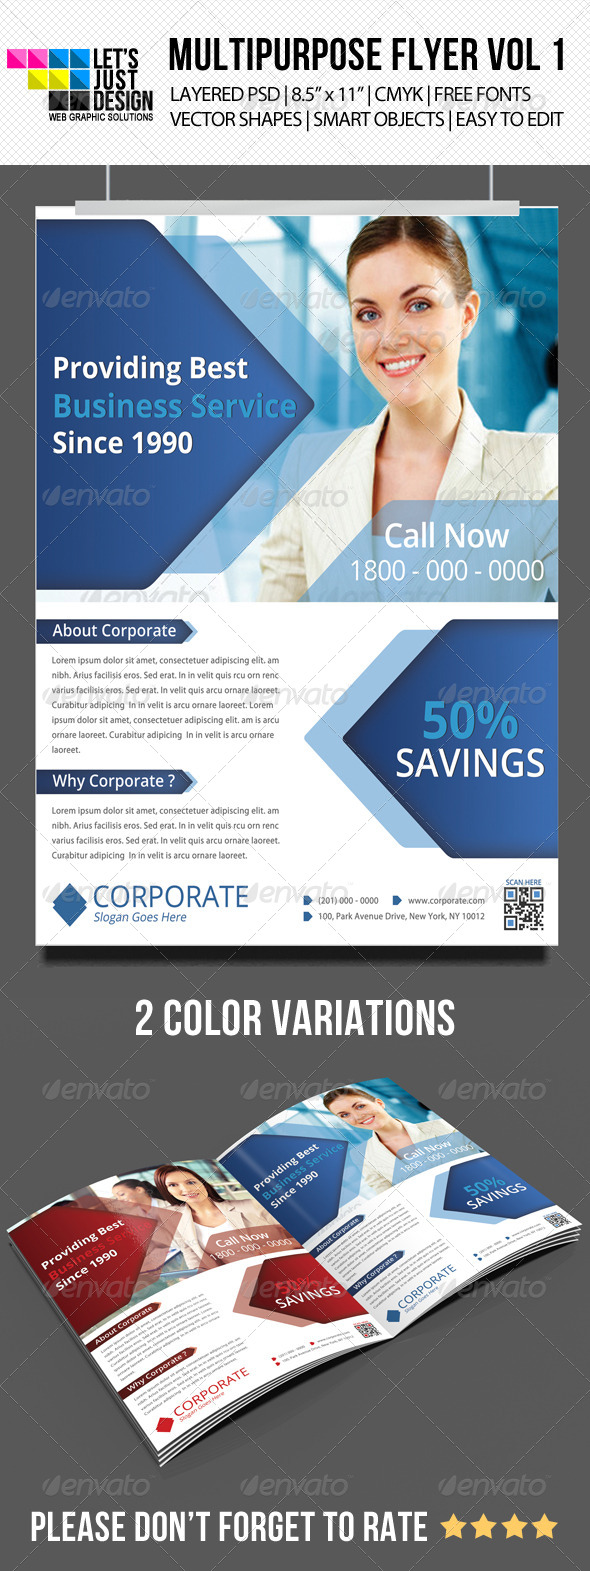 Multipurpose Corporate Flyer Vol 5 - Corporate Flyers